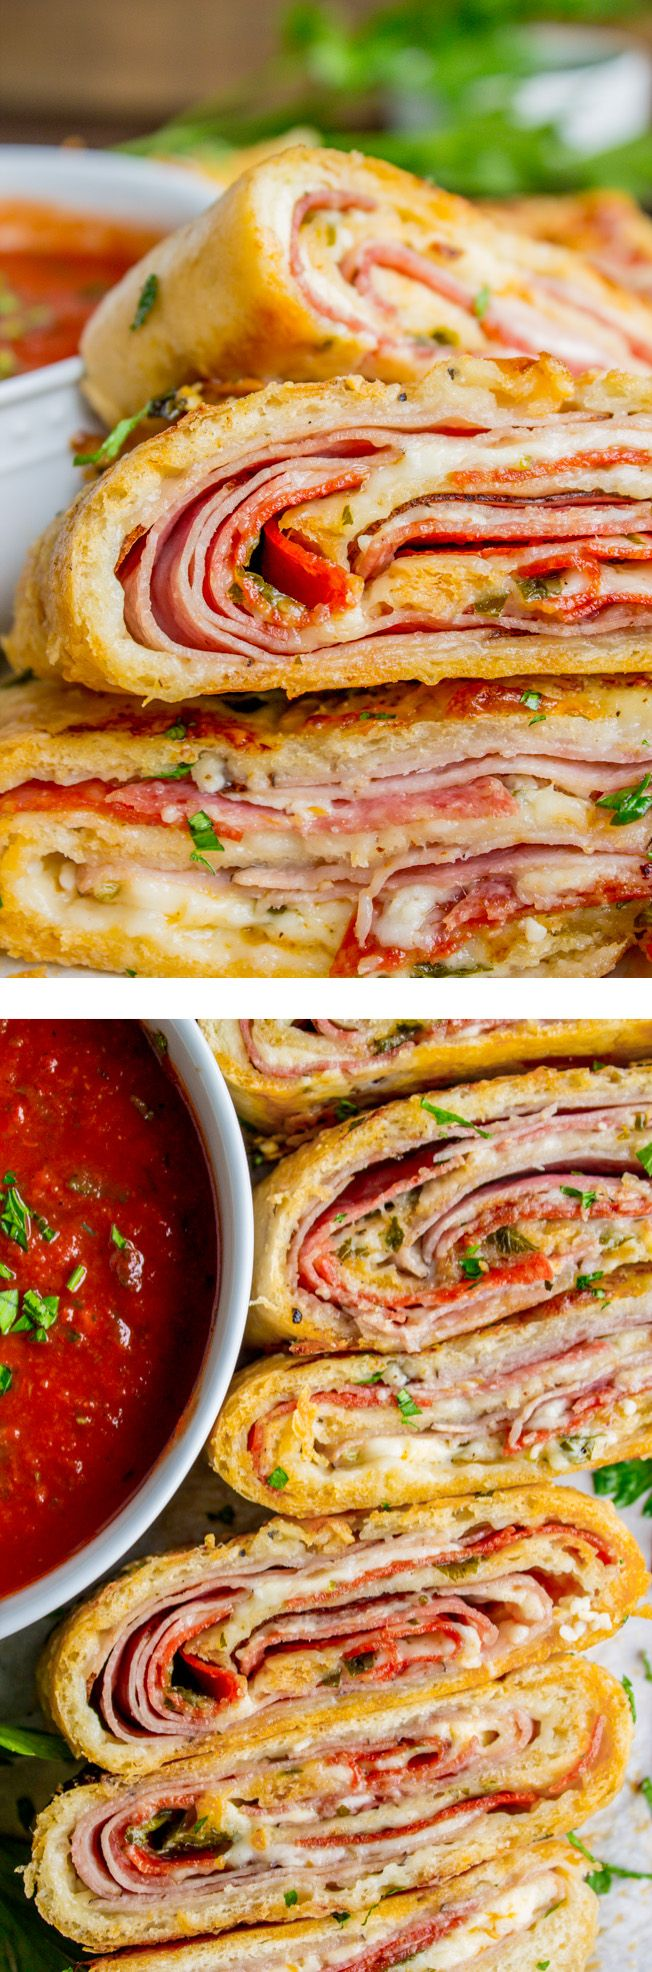 Stromboli is basically rolled up pizza with mozzarella, ham, and salami. I threw in some pepperoni and pepper jack cheese just for fun. Dip in marinara!